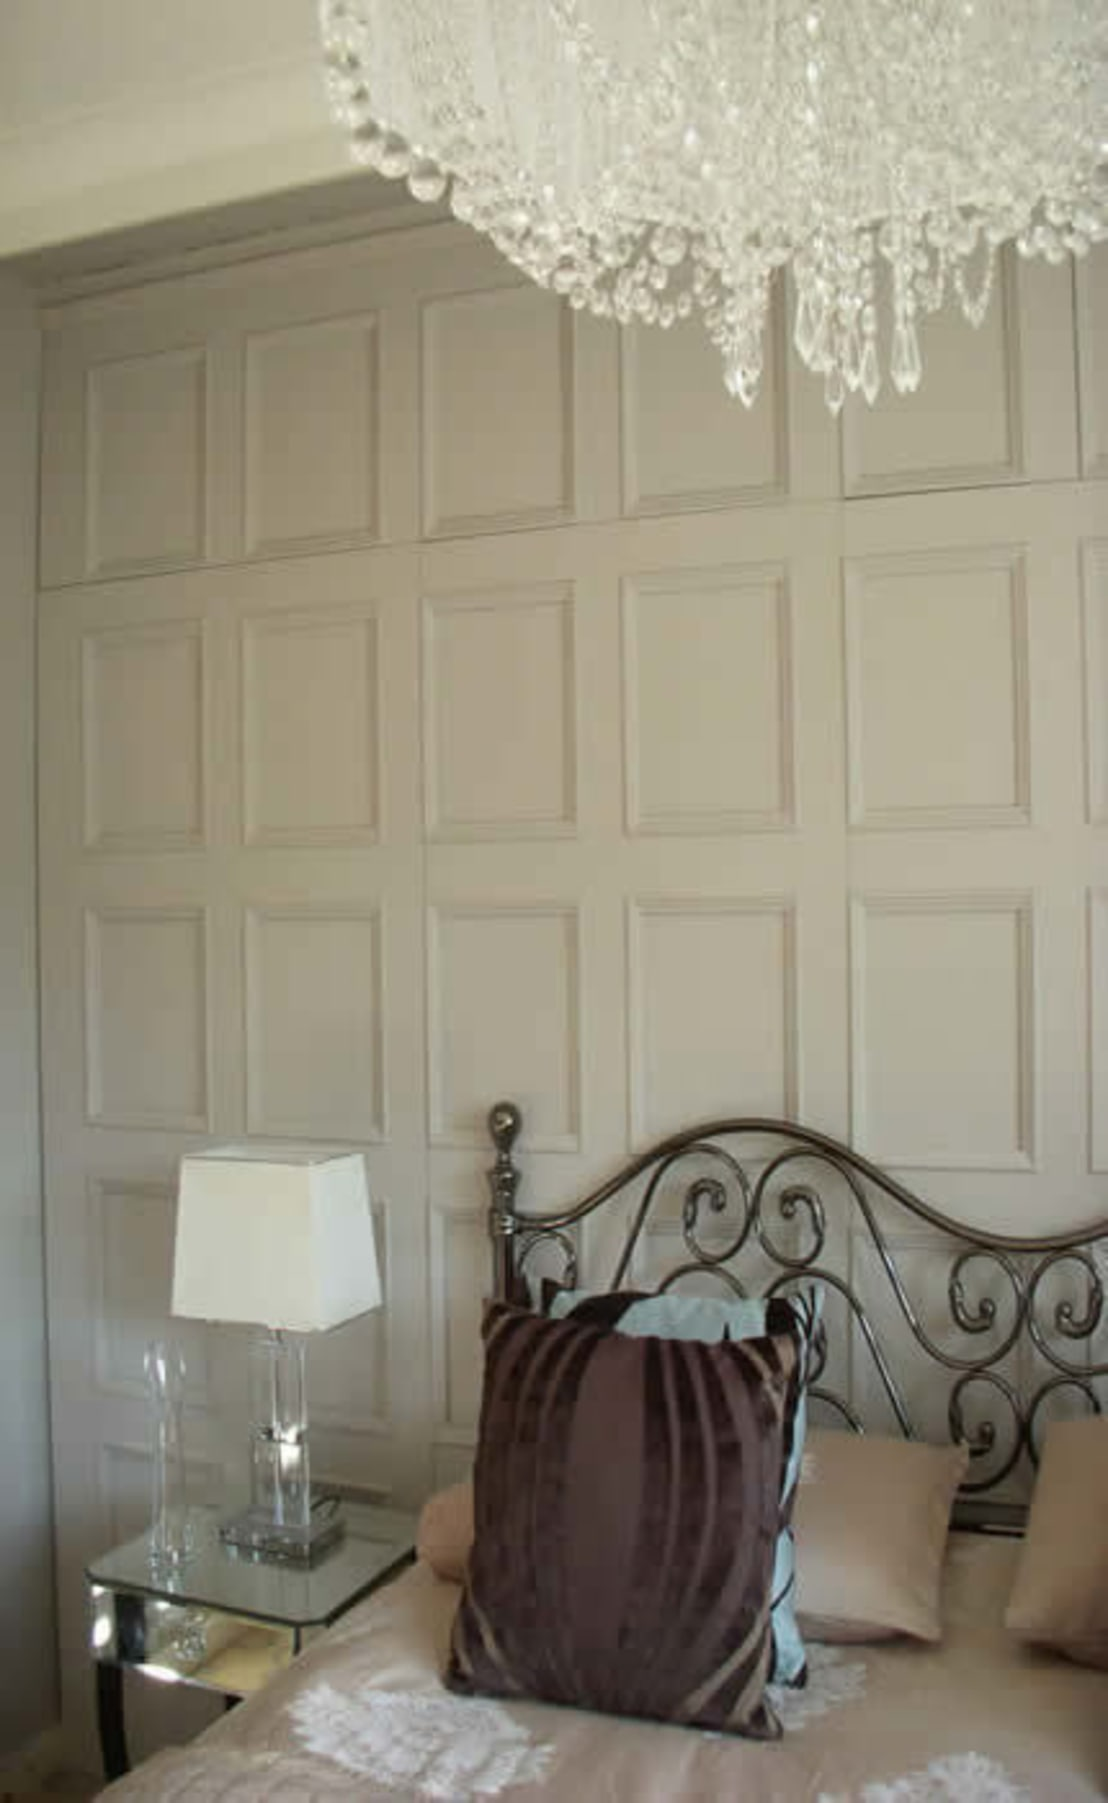 60 minute wall panelling with interior designer john for 60 minute makeover bedroom designs